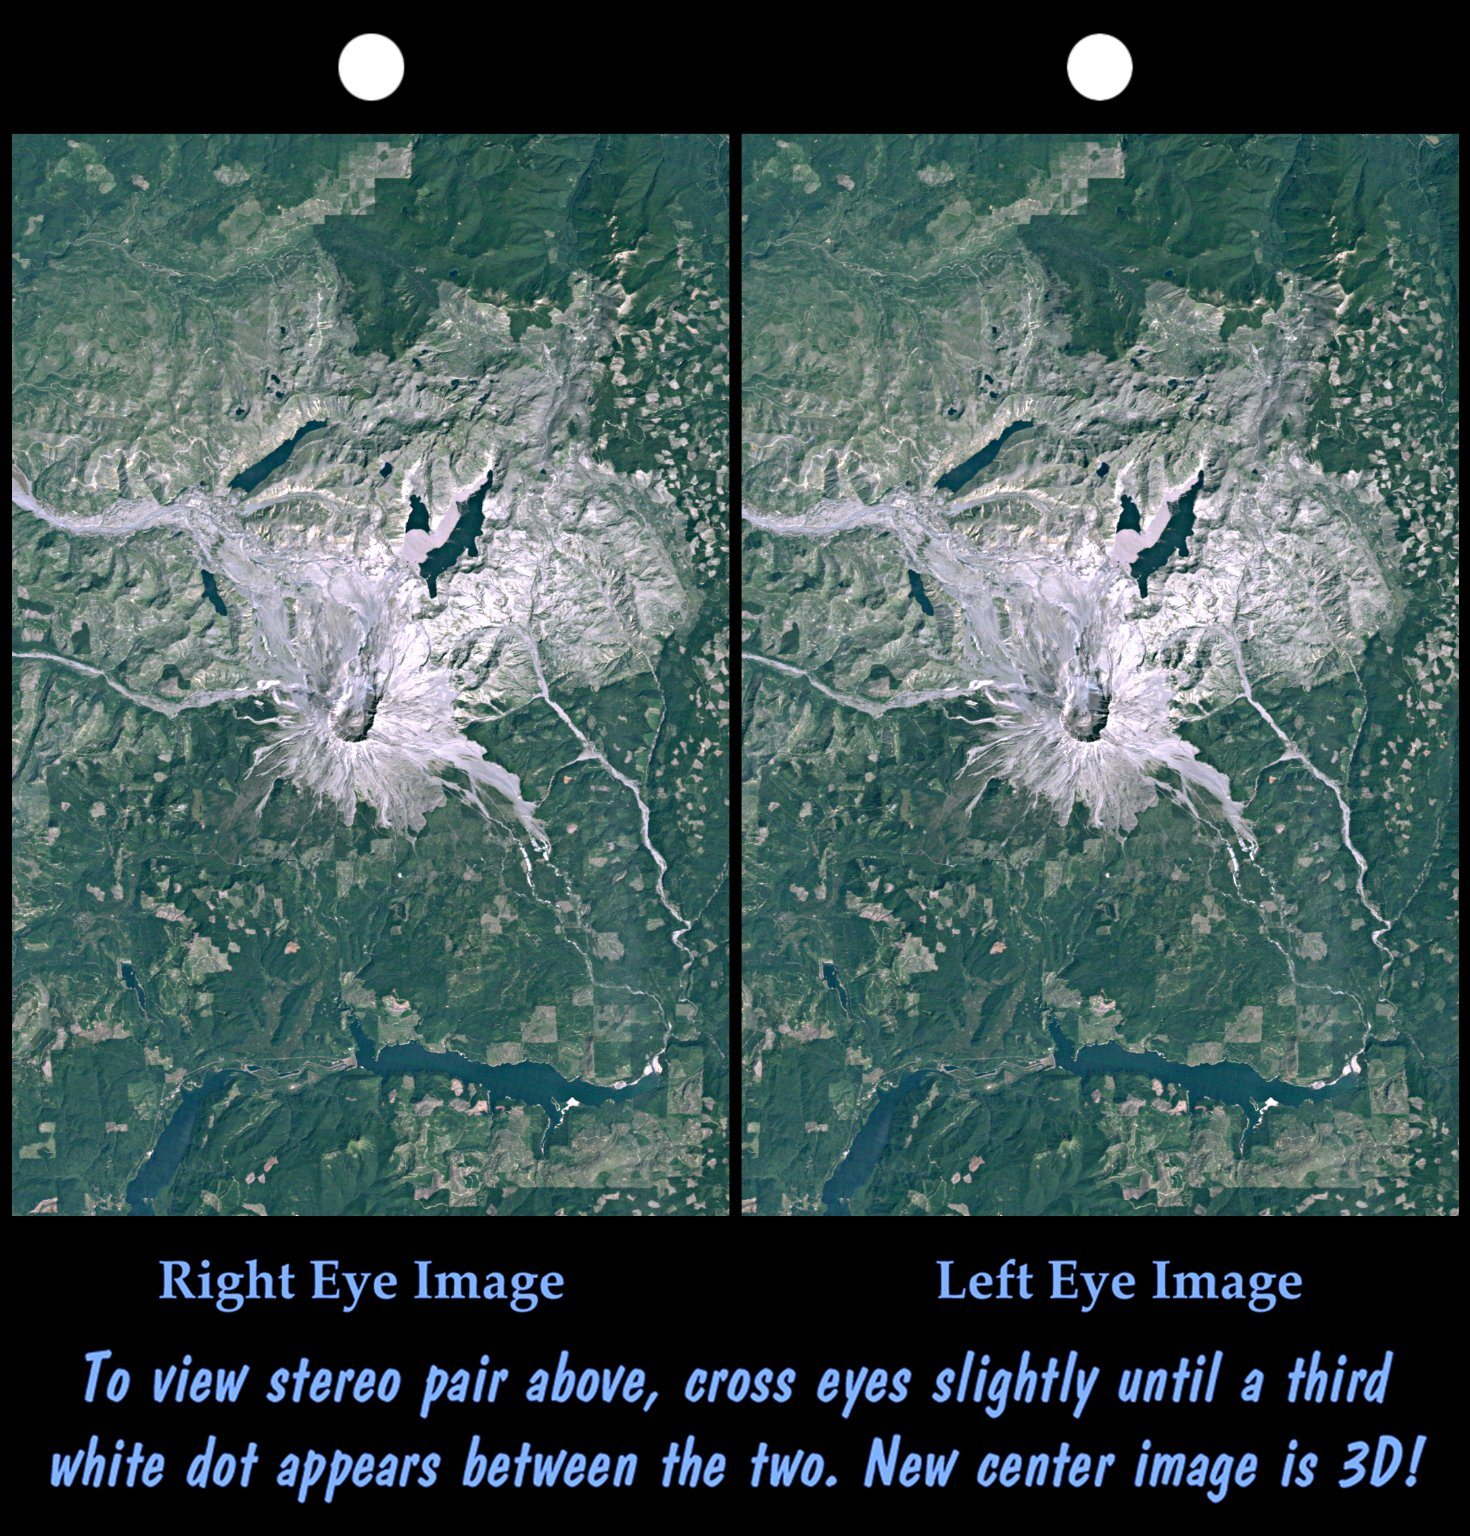 Stereo Pair Mount St Helens Washington State Nasa Free Download Borrow And Streaming Internet Archive